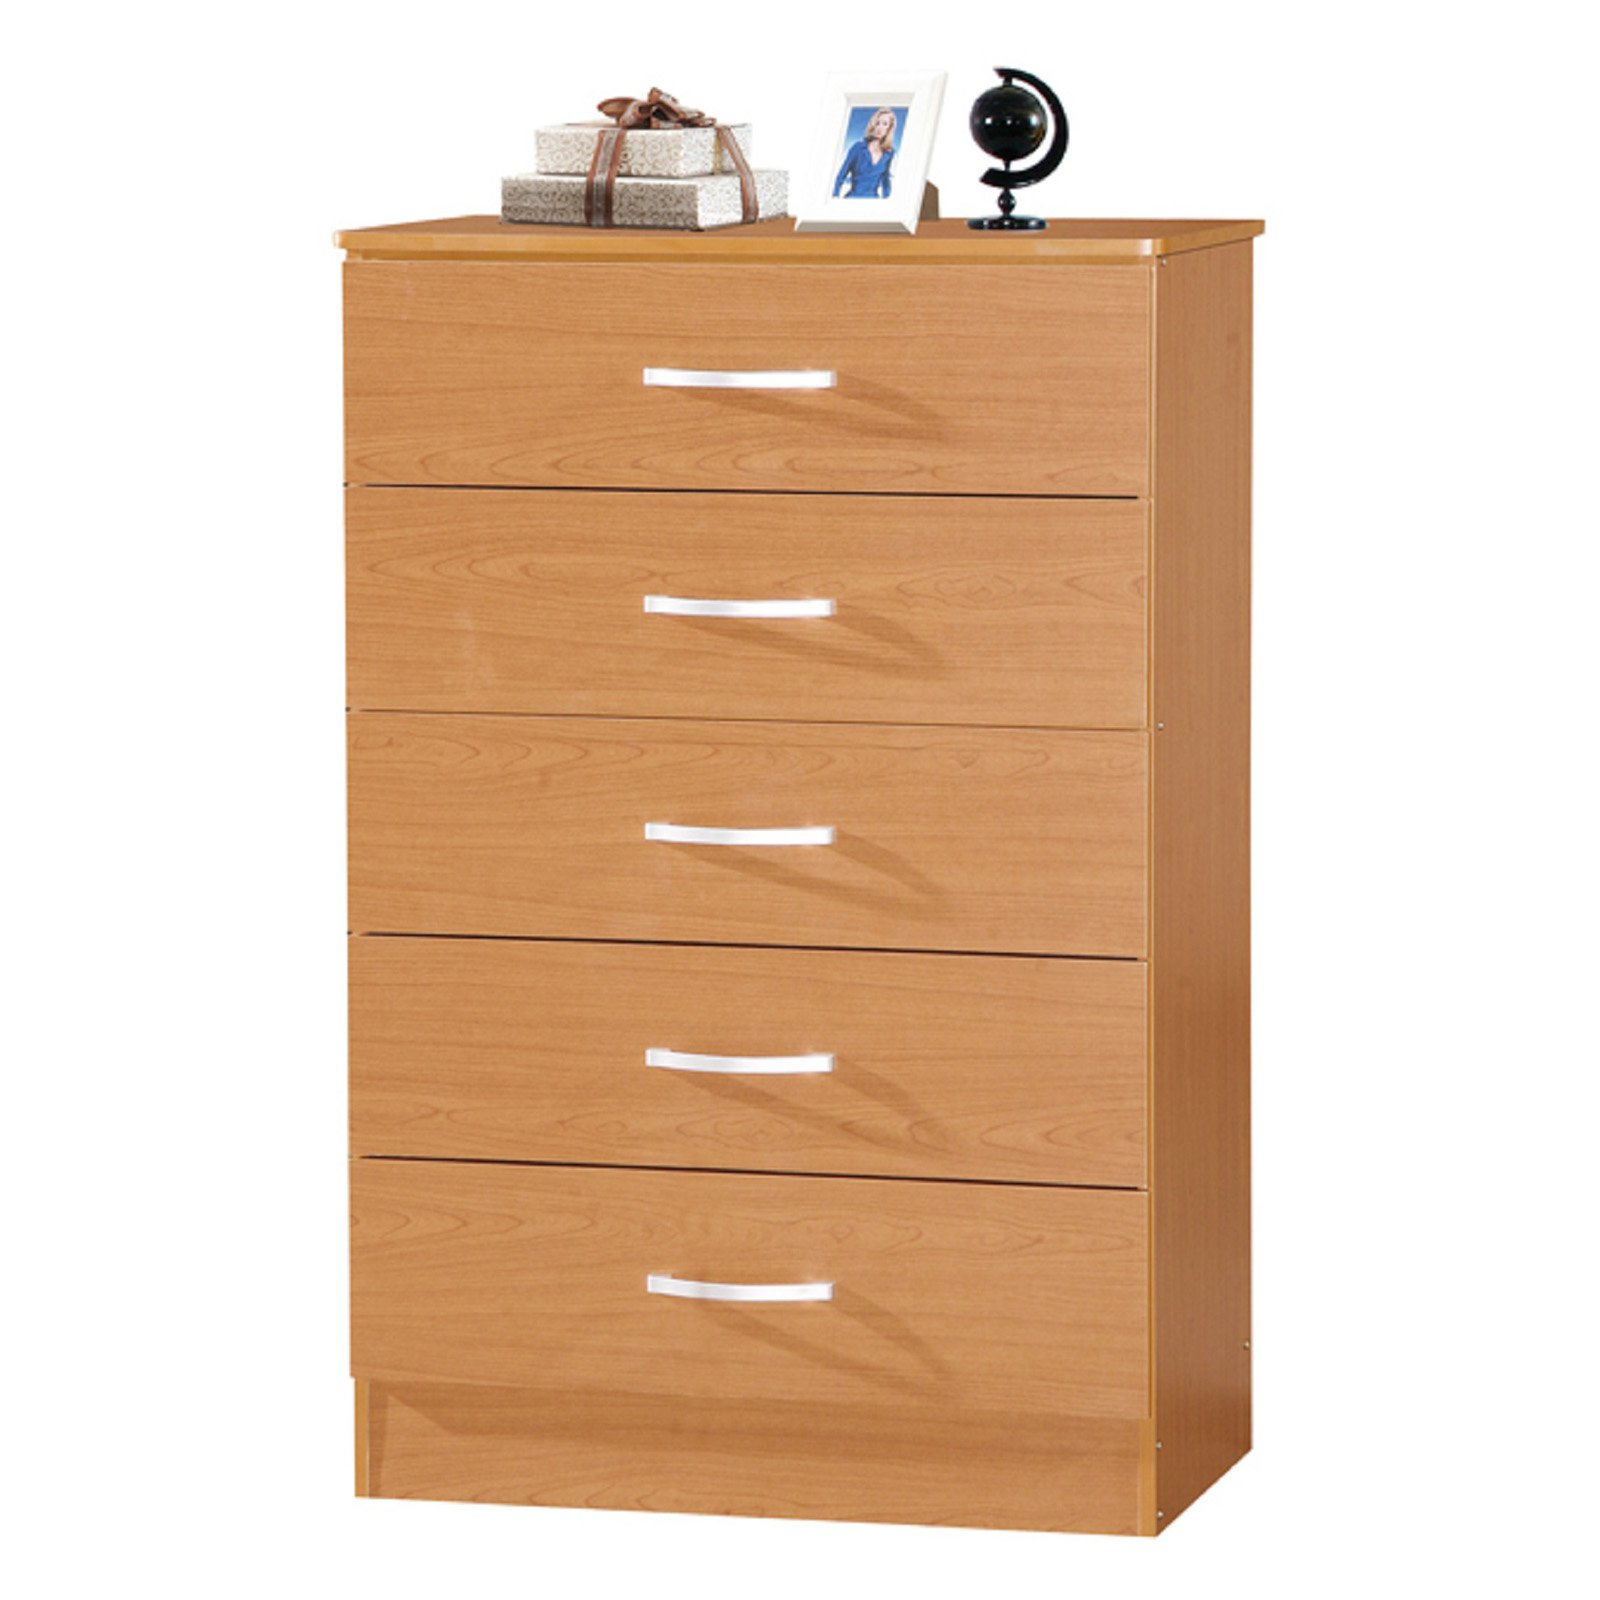 Hodedah Imports Wooden 5 Drawer Chest